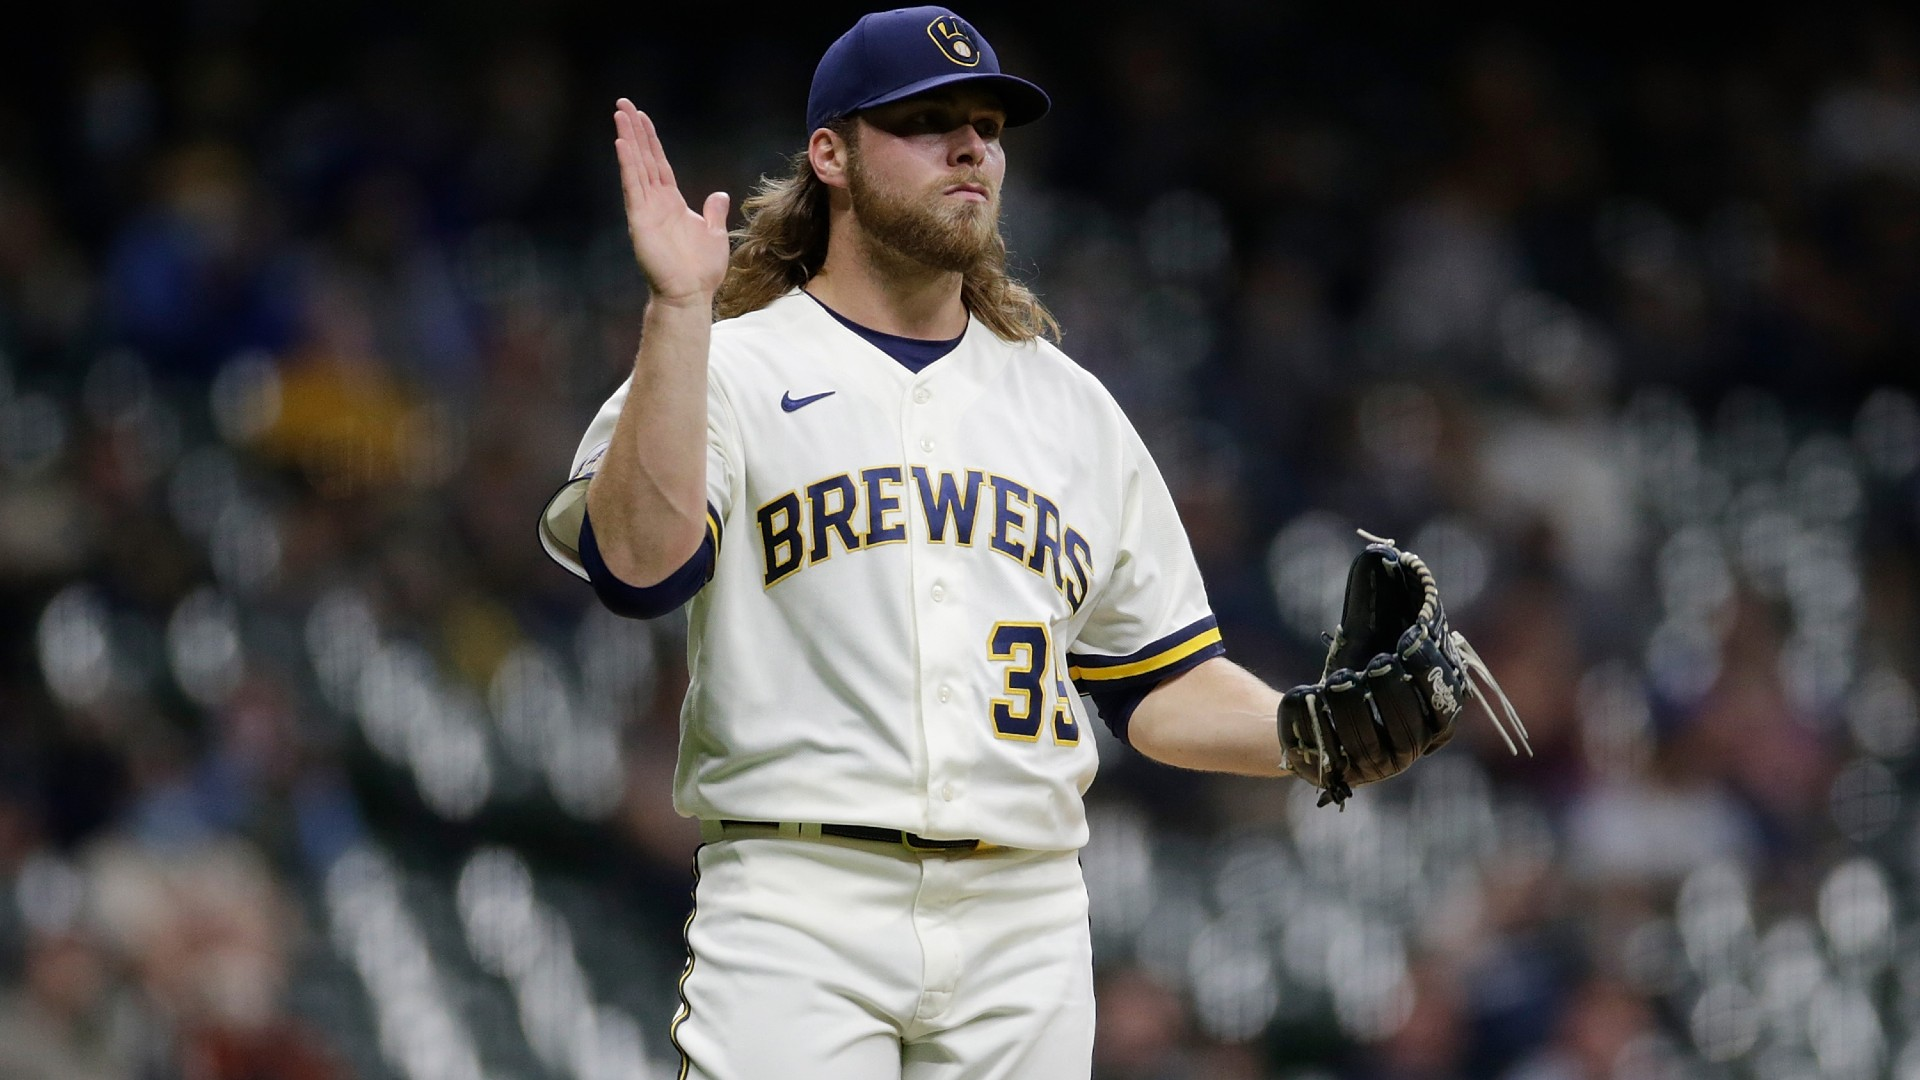 Brewers' Corbin Burnes sets multiple MLB retirement records before throwing first step of season